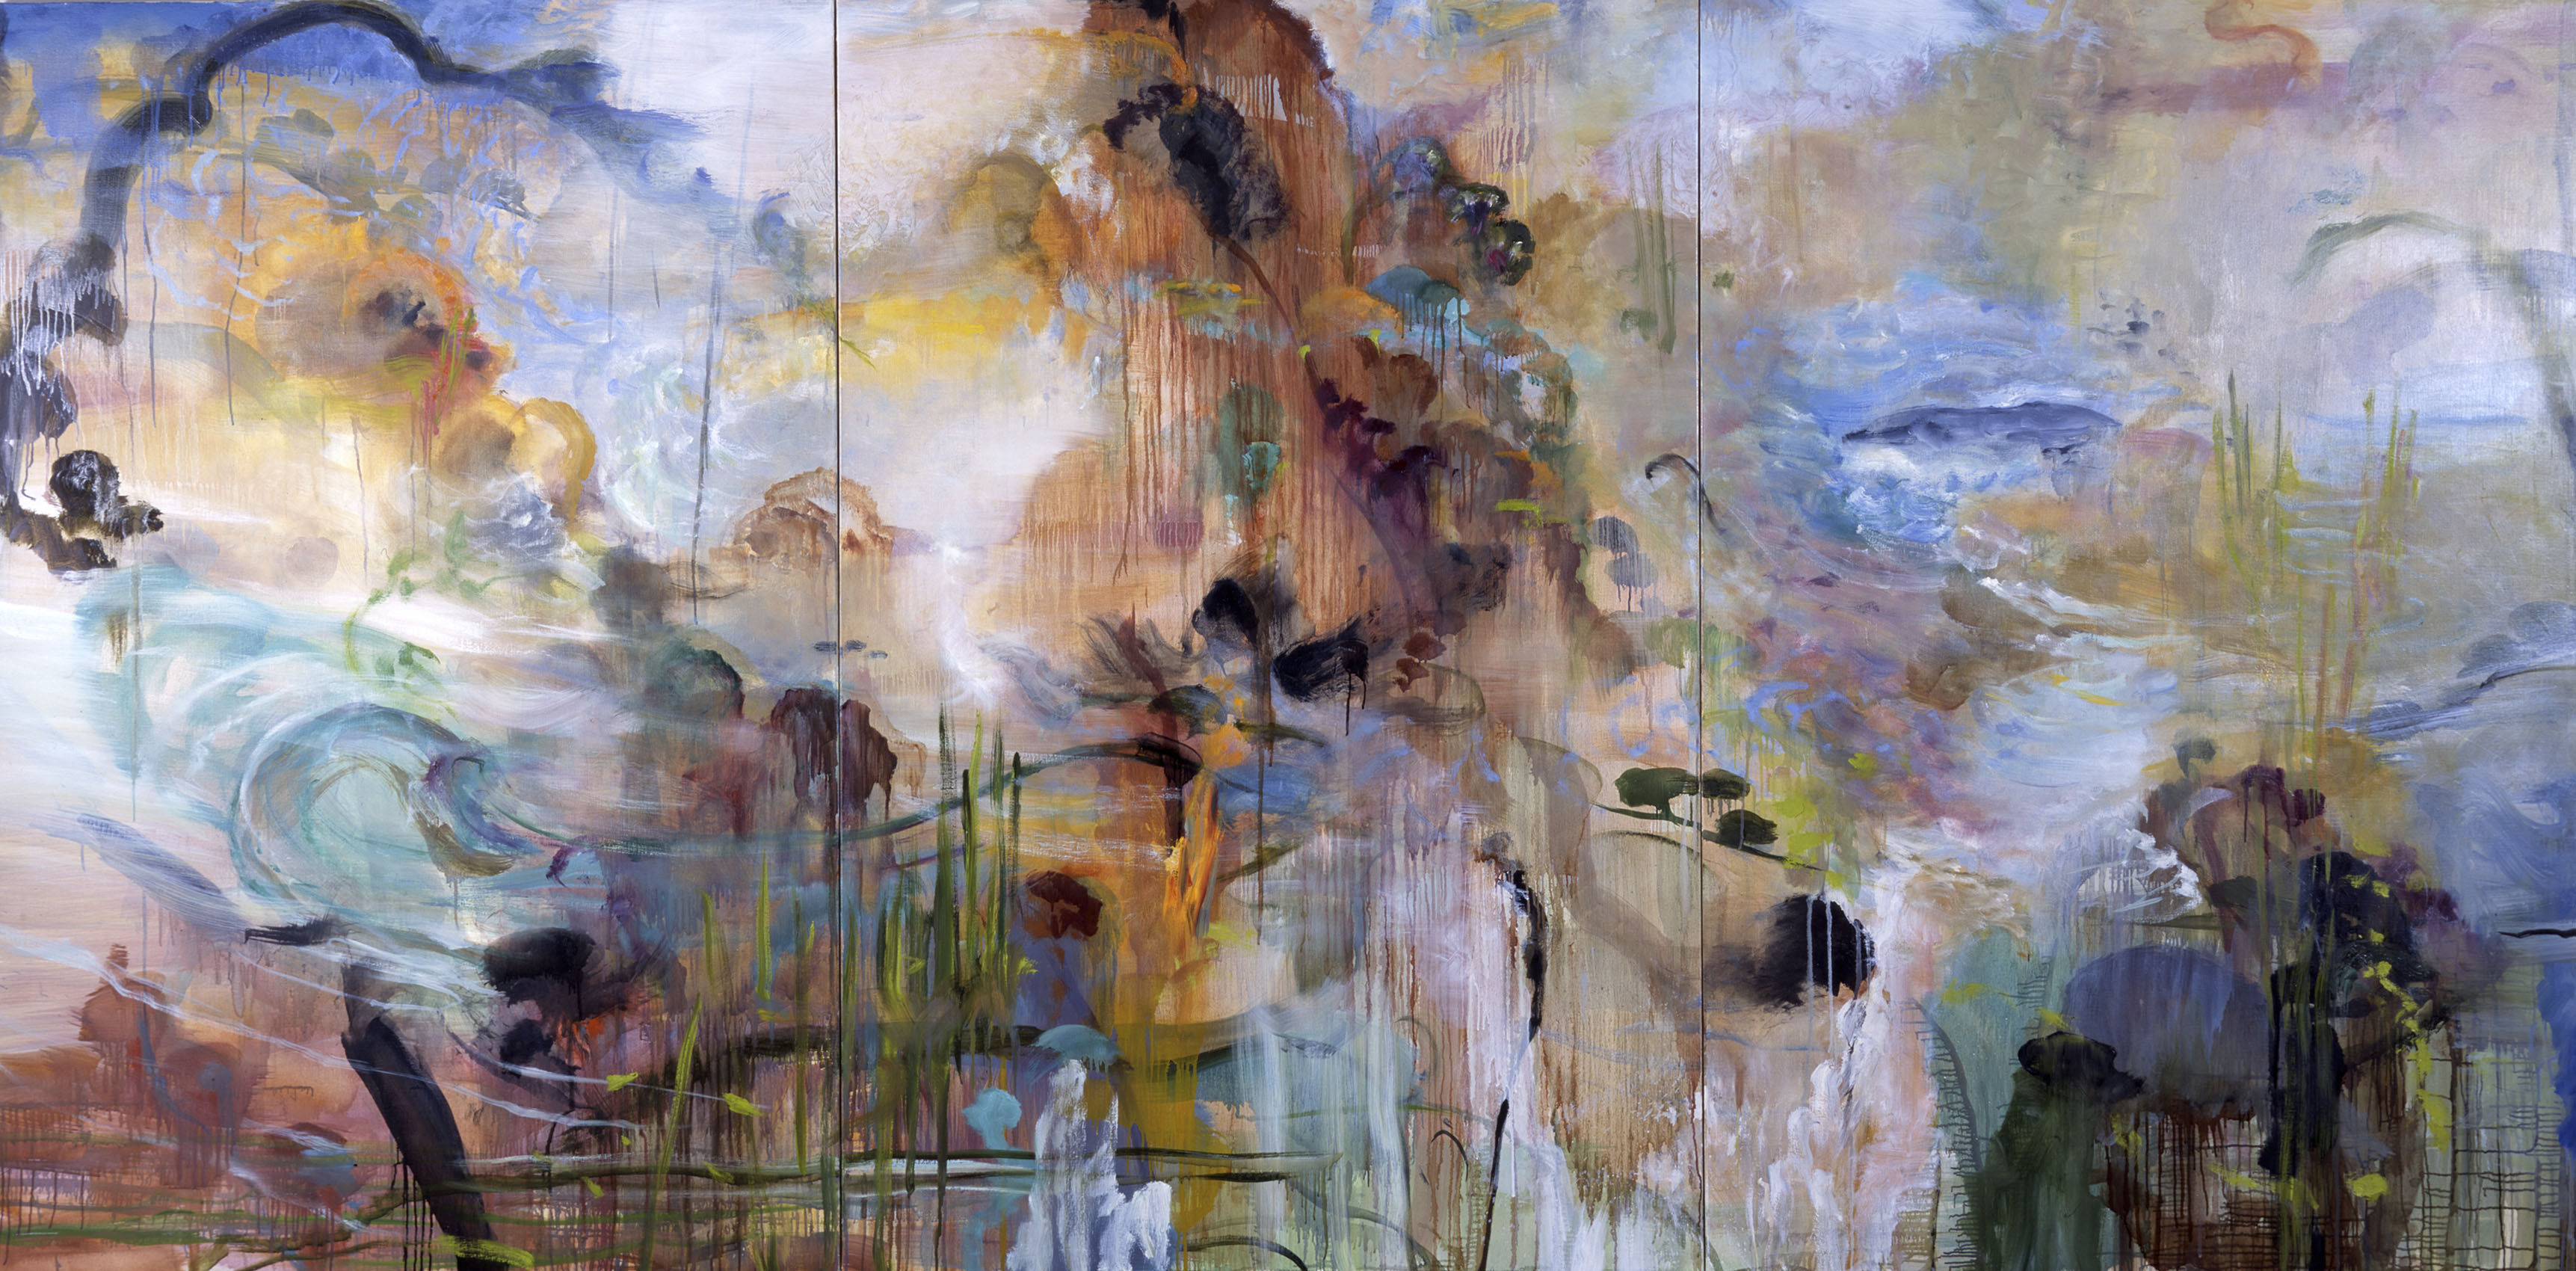 Wandering Breeze, 2001, oil on canvas, triptych 6x12 feet